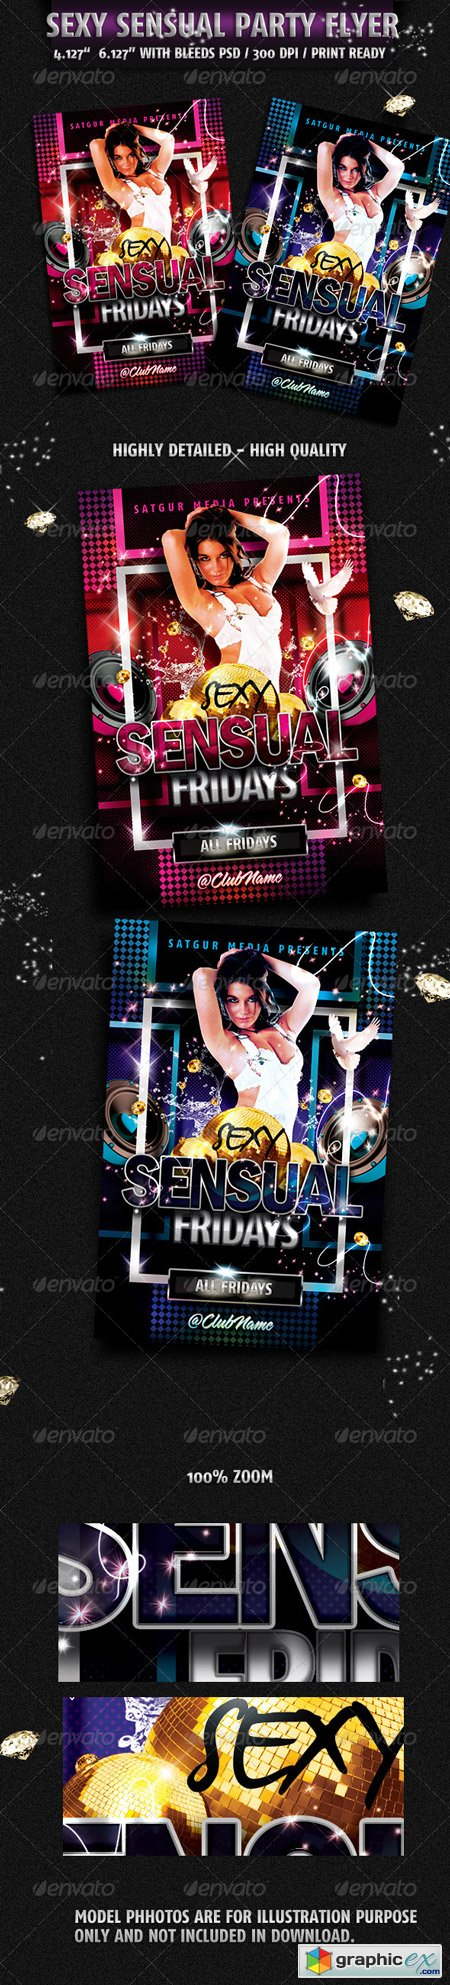 Sensual Music Dance DJ Night Party Flyer 2138436